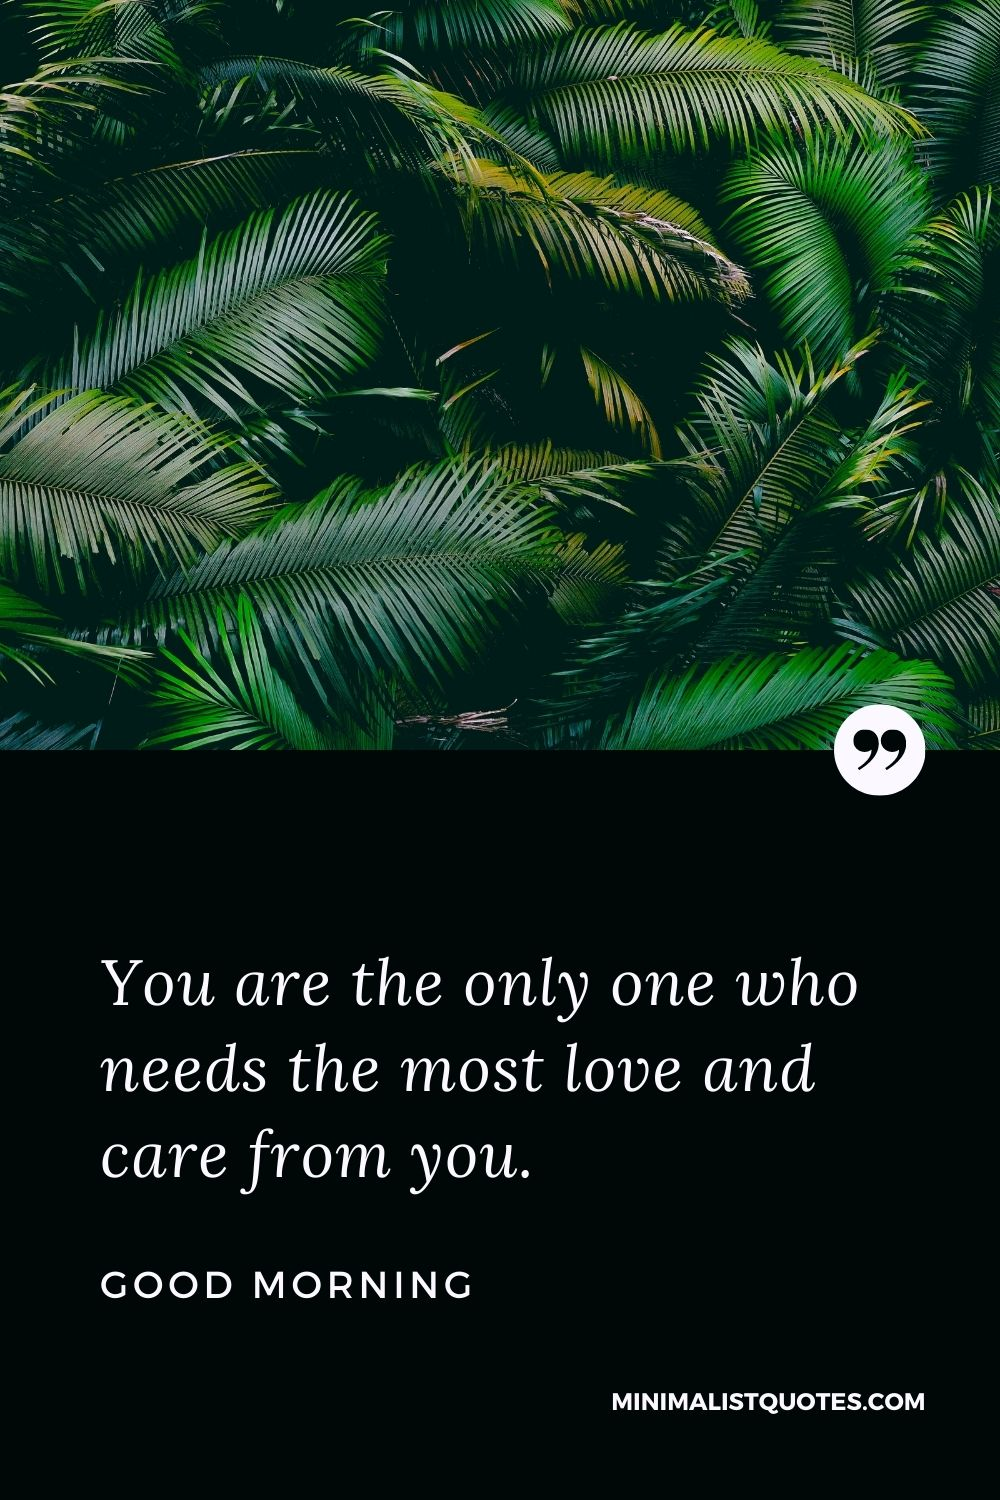 Good Morning Wish & Message With Image: You are the only one who needs the most love and care from you.